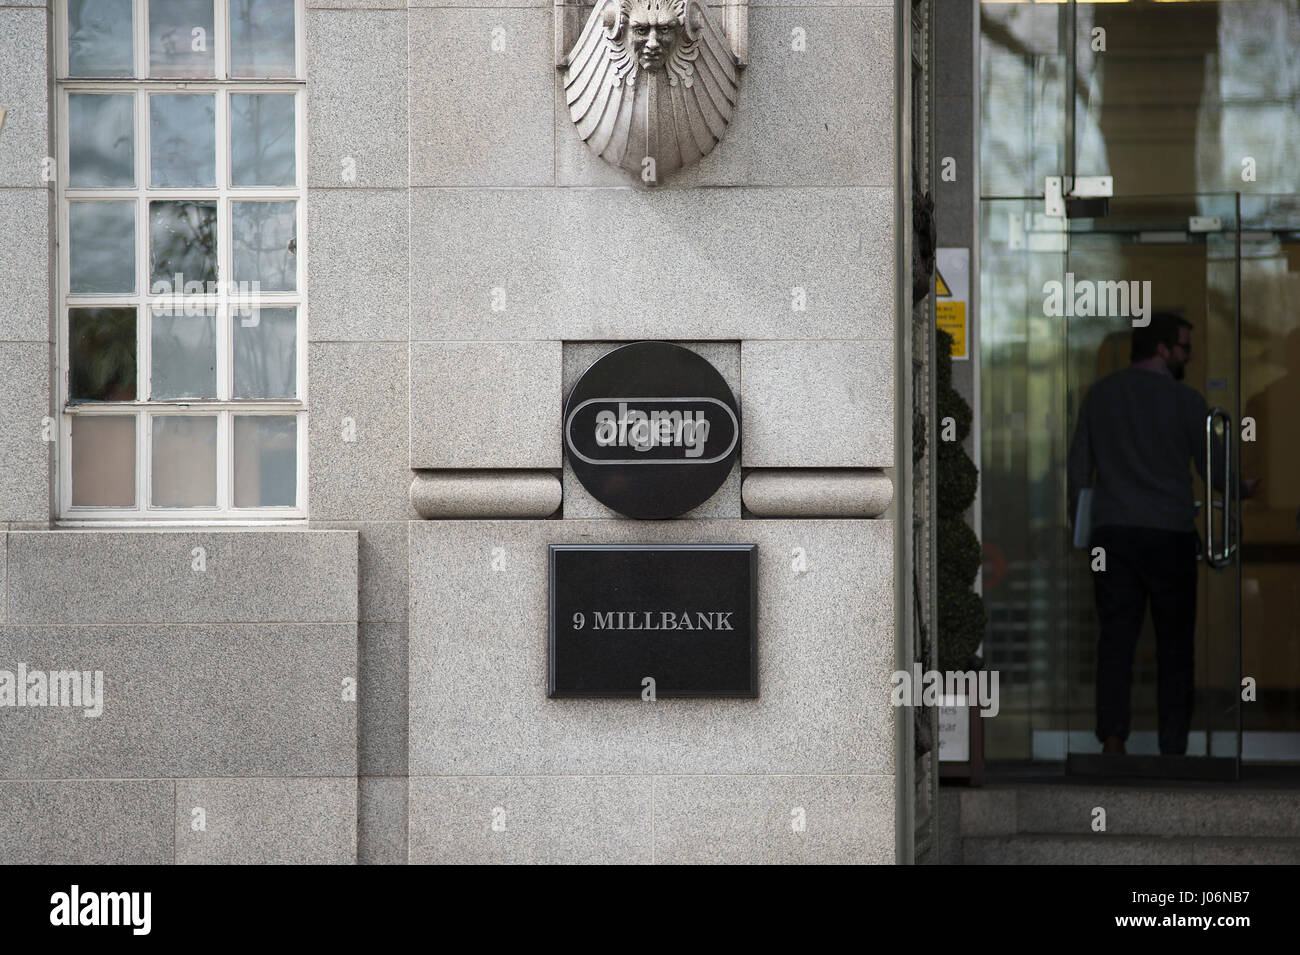 The government regulator for gas and electricity markets in Great Britain, Ofgem, 9 Millbank, London - Stock Image